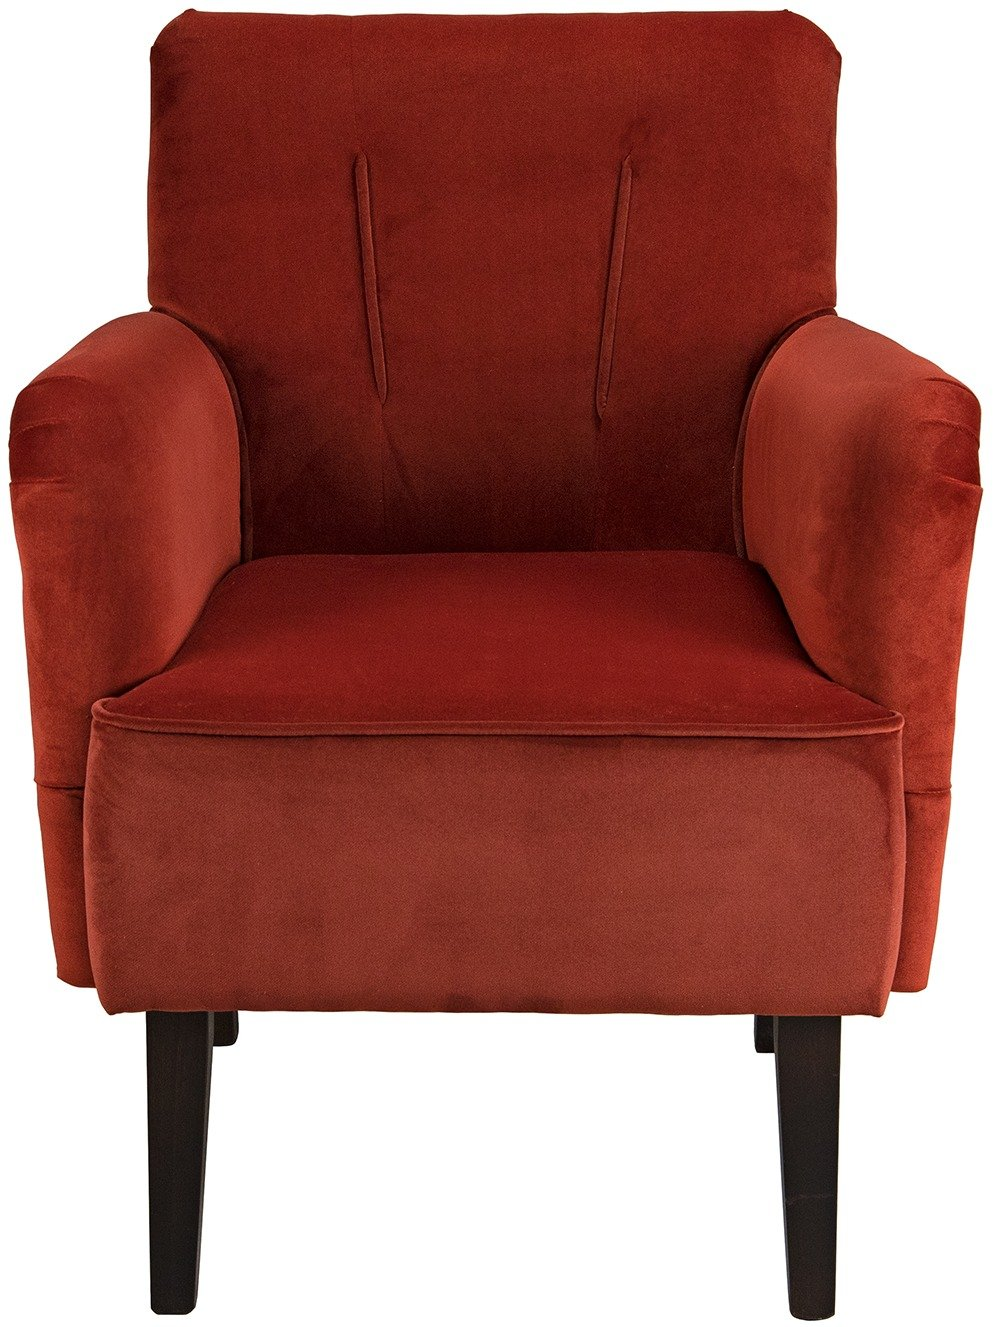 Front image of the Connie Lounge Chair